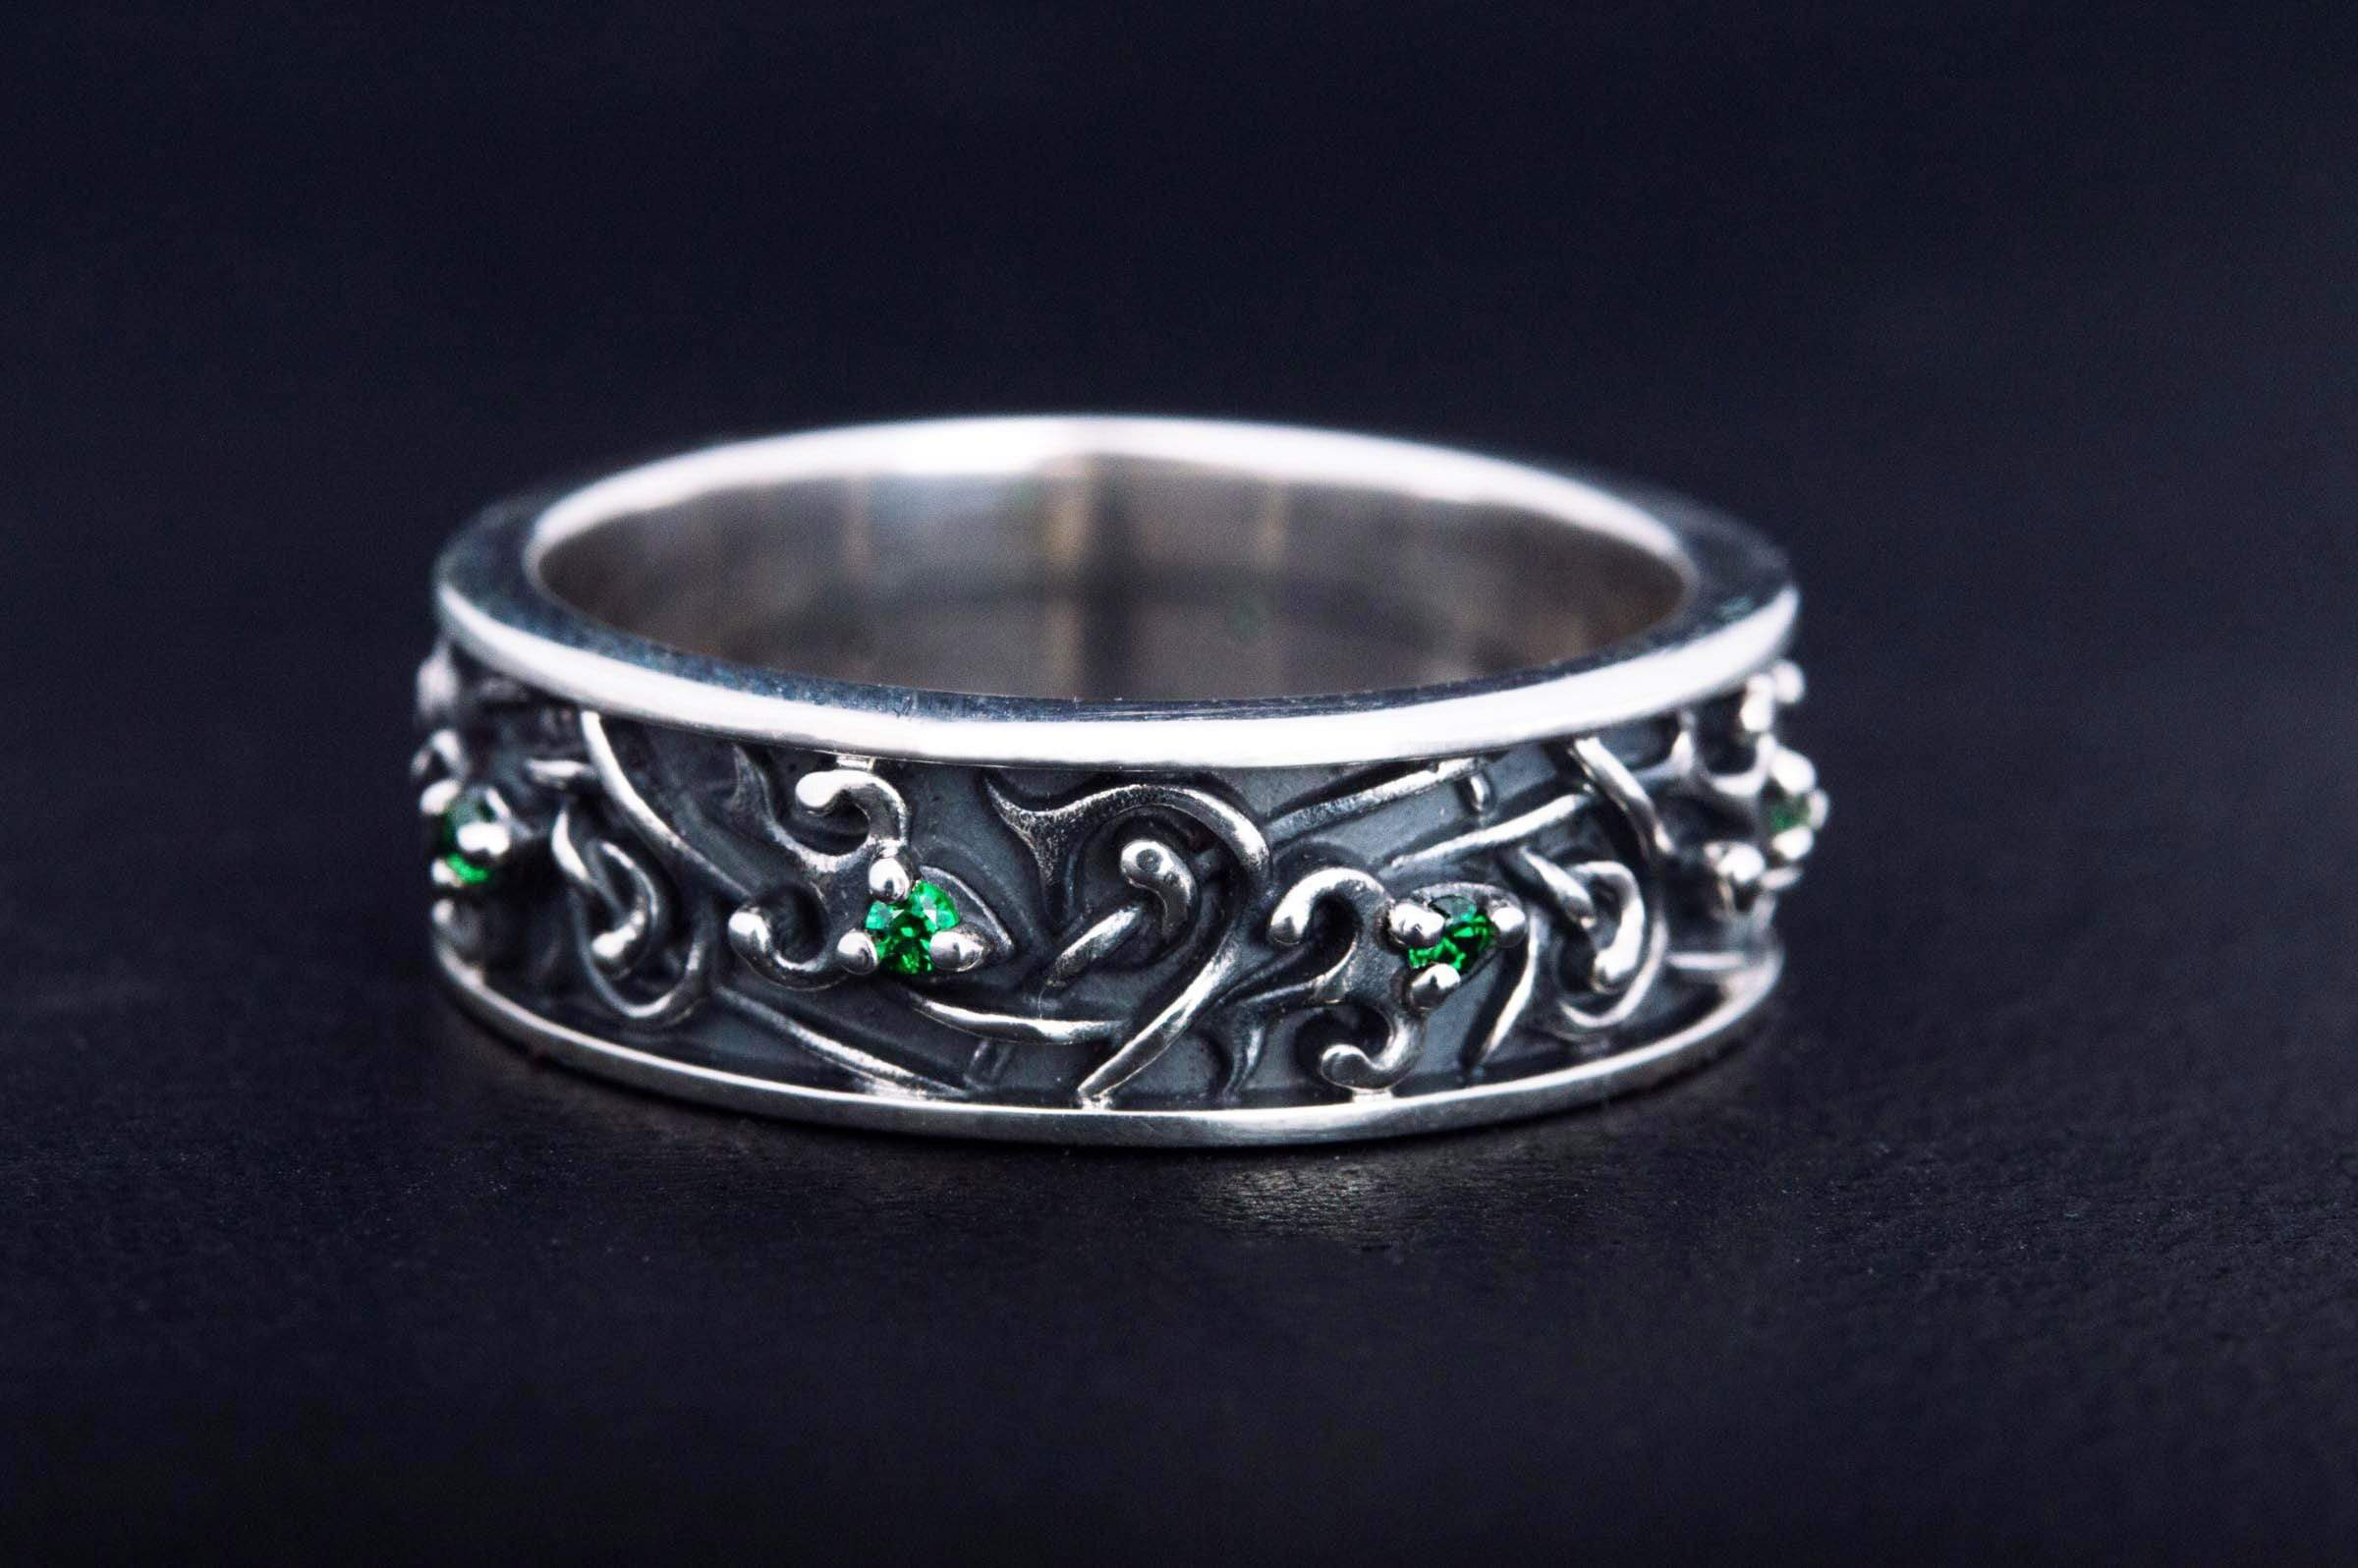 Ornament Ring with Green Cubic Zirconia Sterling Silver Jewelry